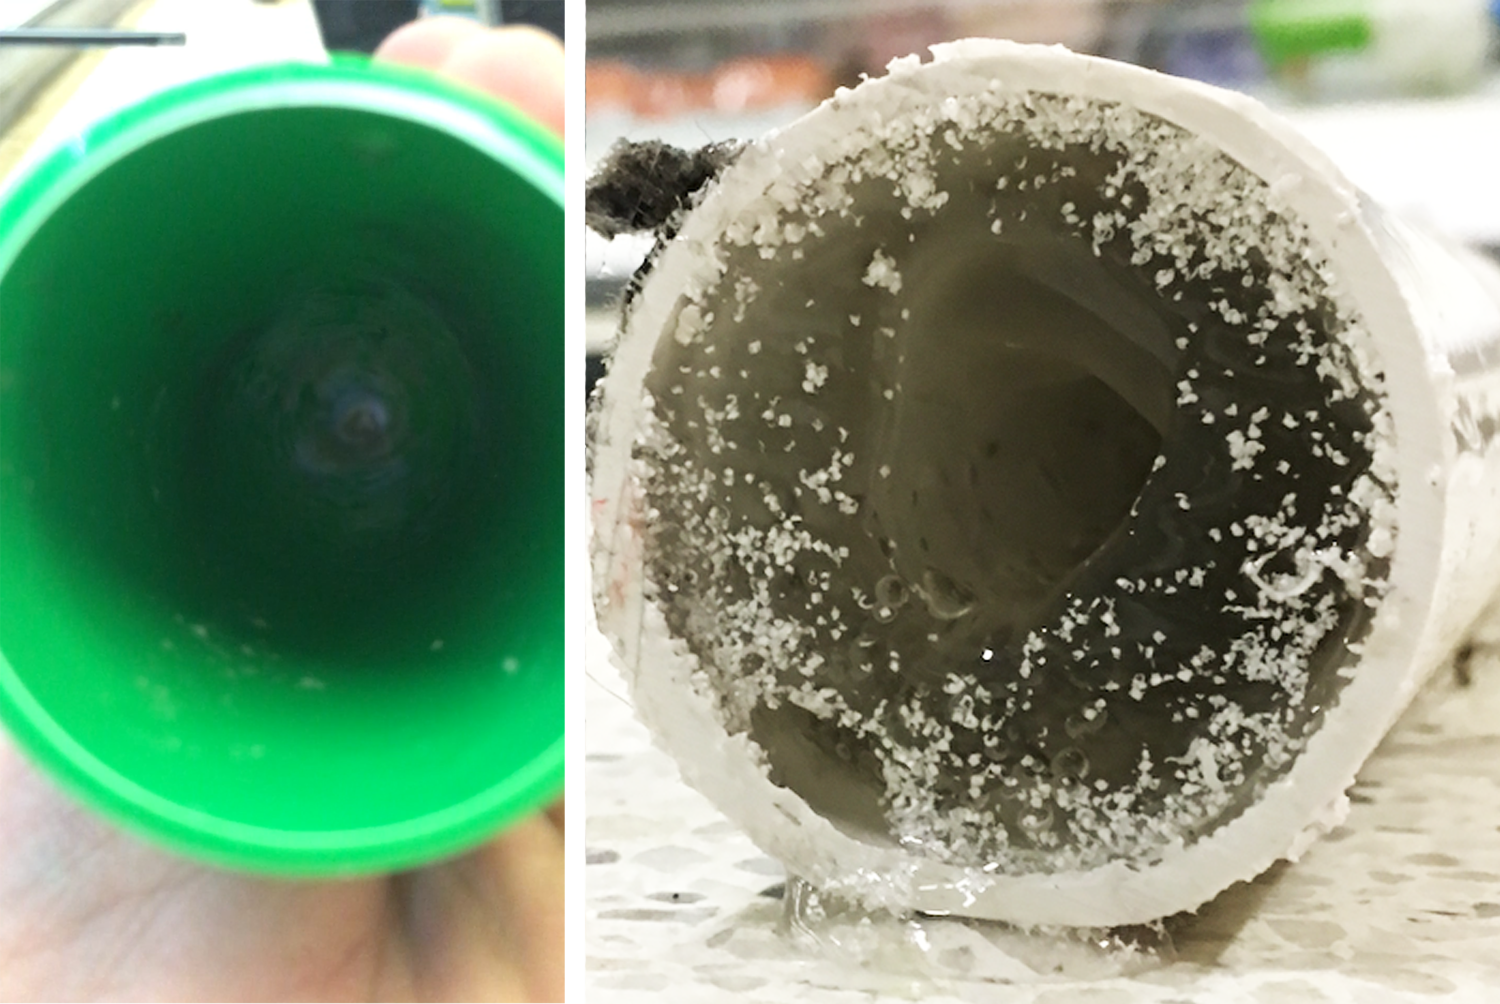 LEFT: a pipe with Parx technologies after 12 months in a refrigerator drain system. RIGHT: a standard pipe after 6 months in the same system.